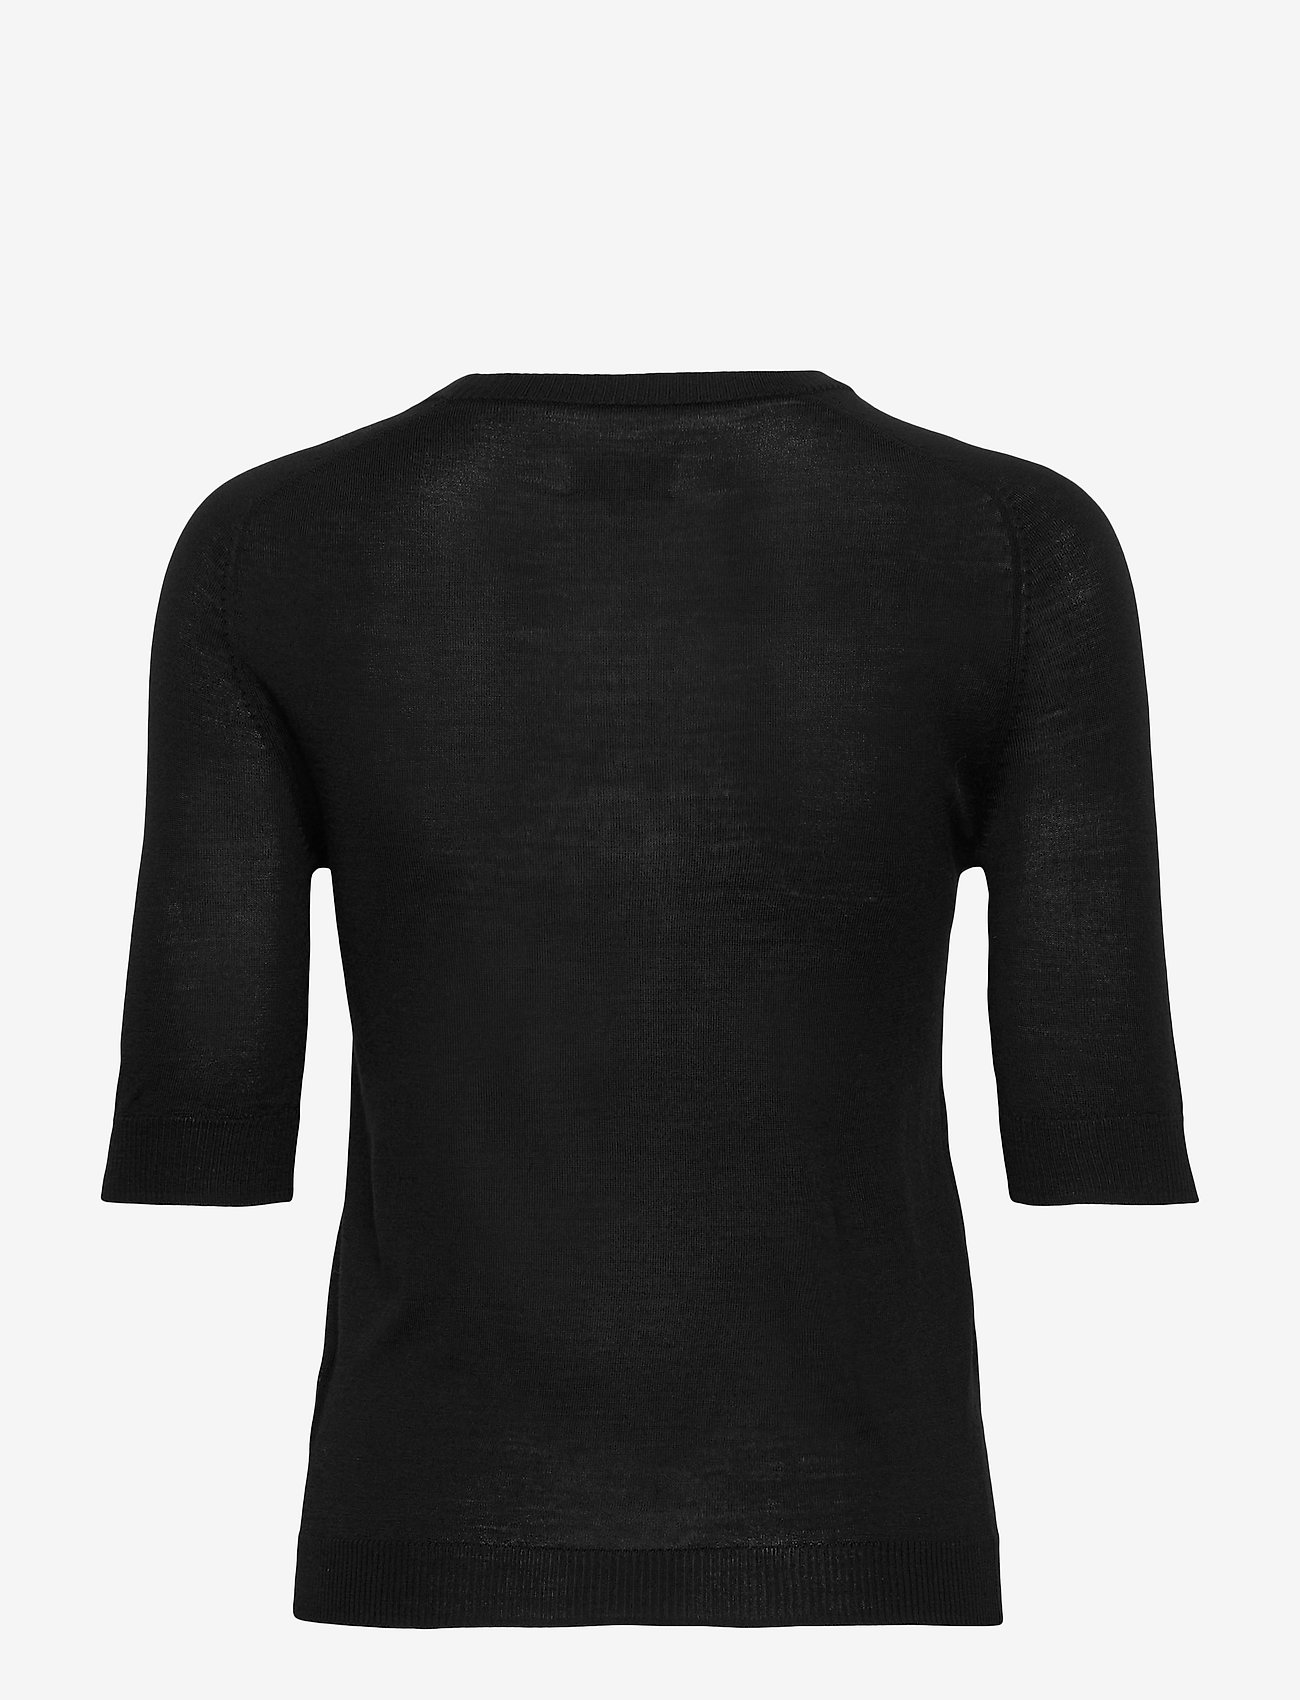 Day Birger et Mikkelsen - DAY Whitney - t-shirts - black - 1